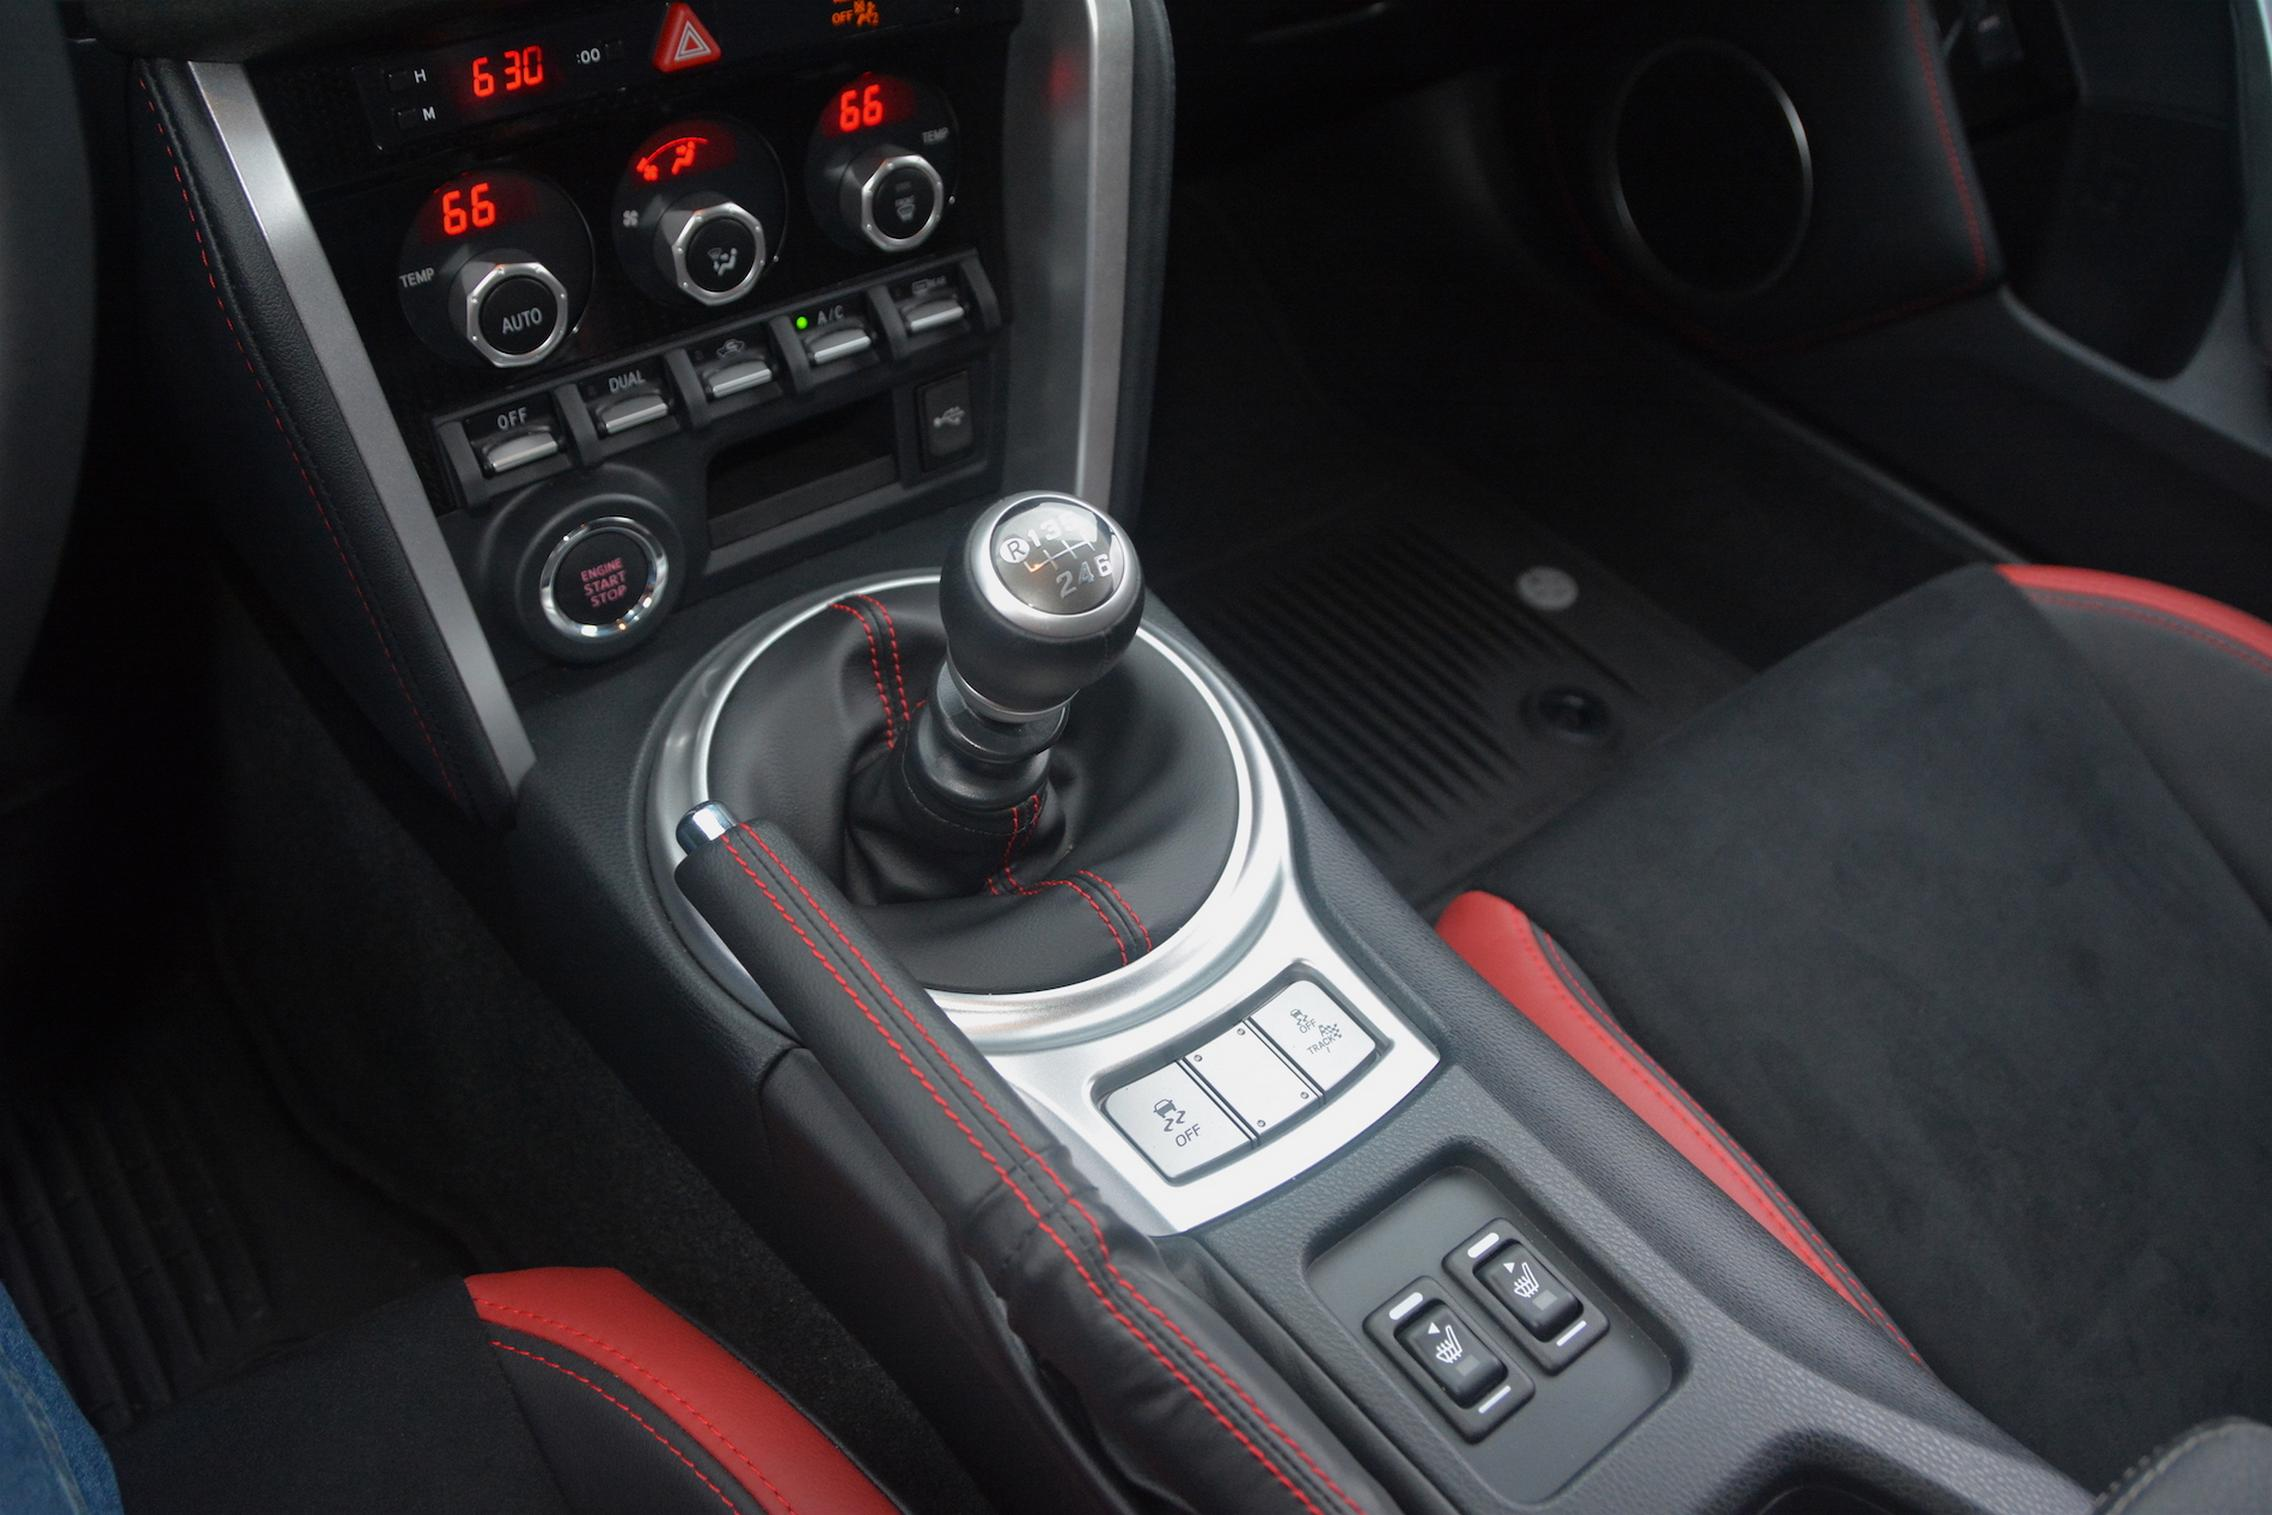 2020 Toyota 86 GT TRD Manual Gear